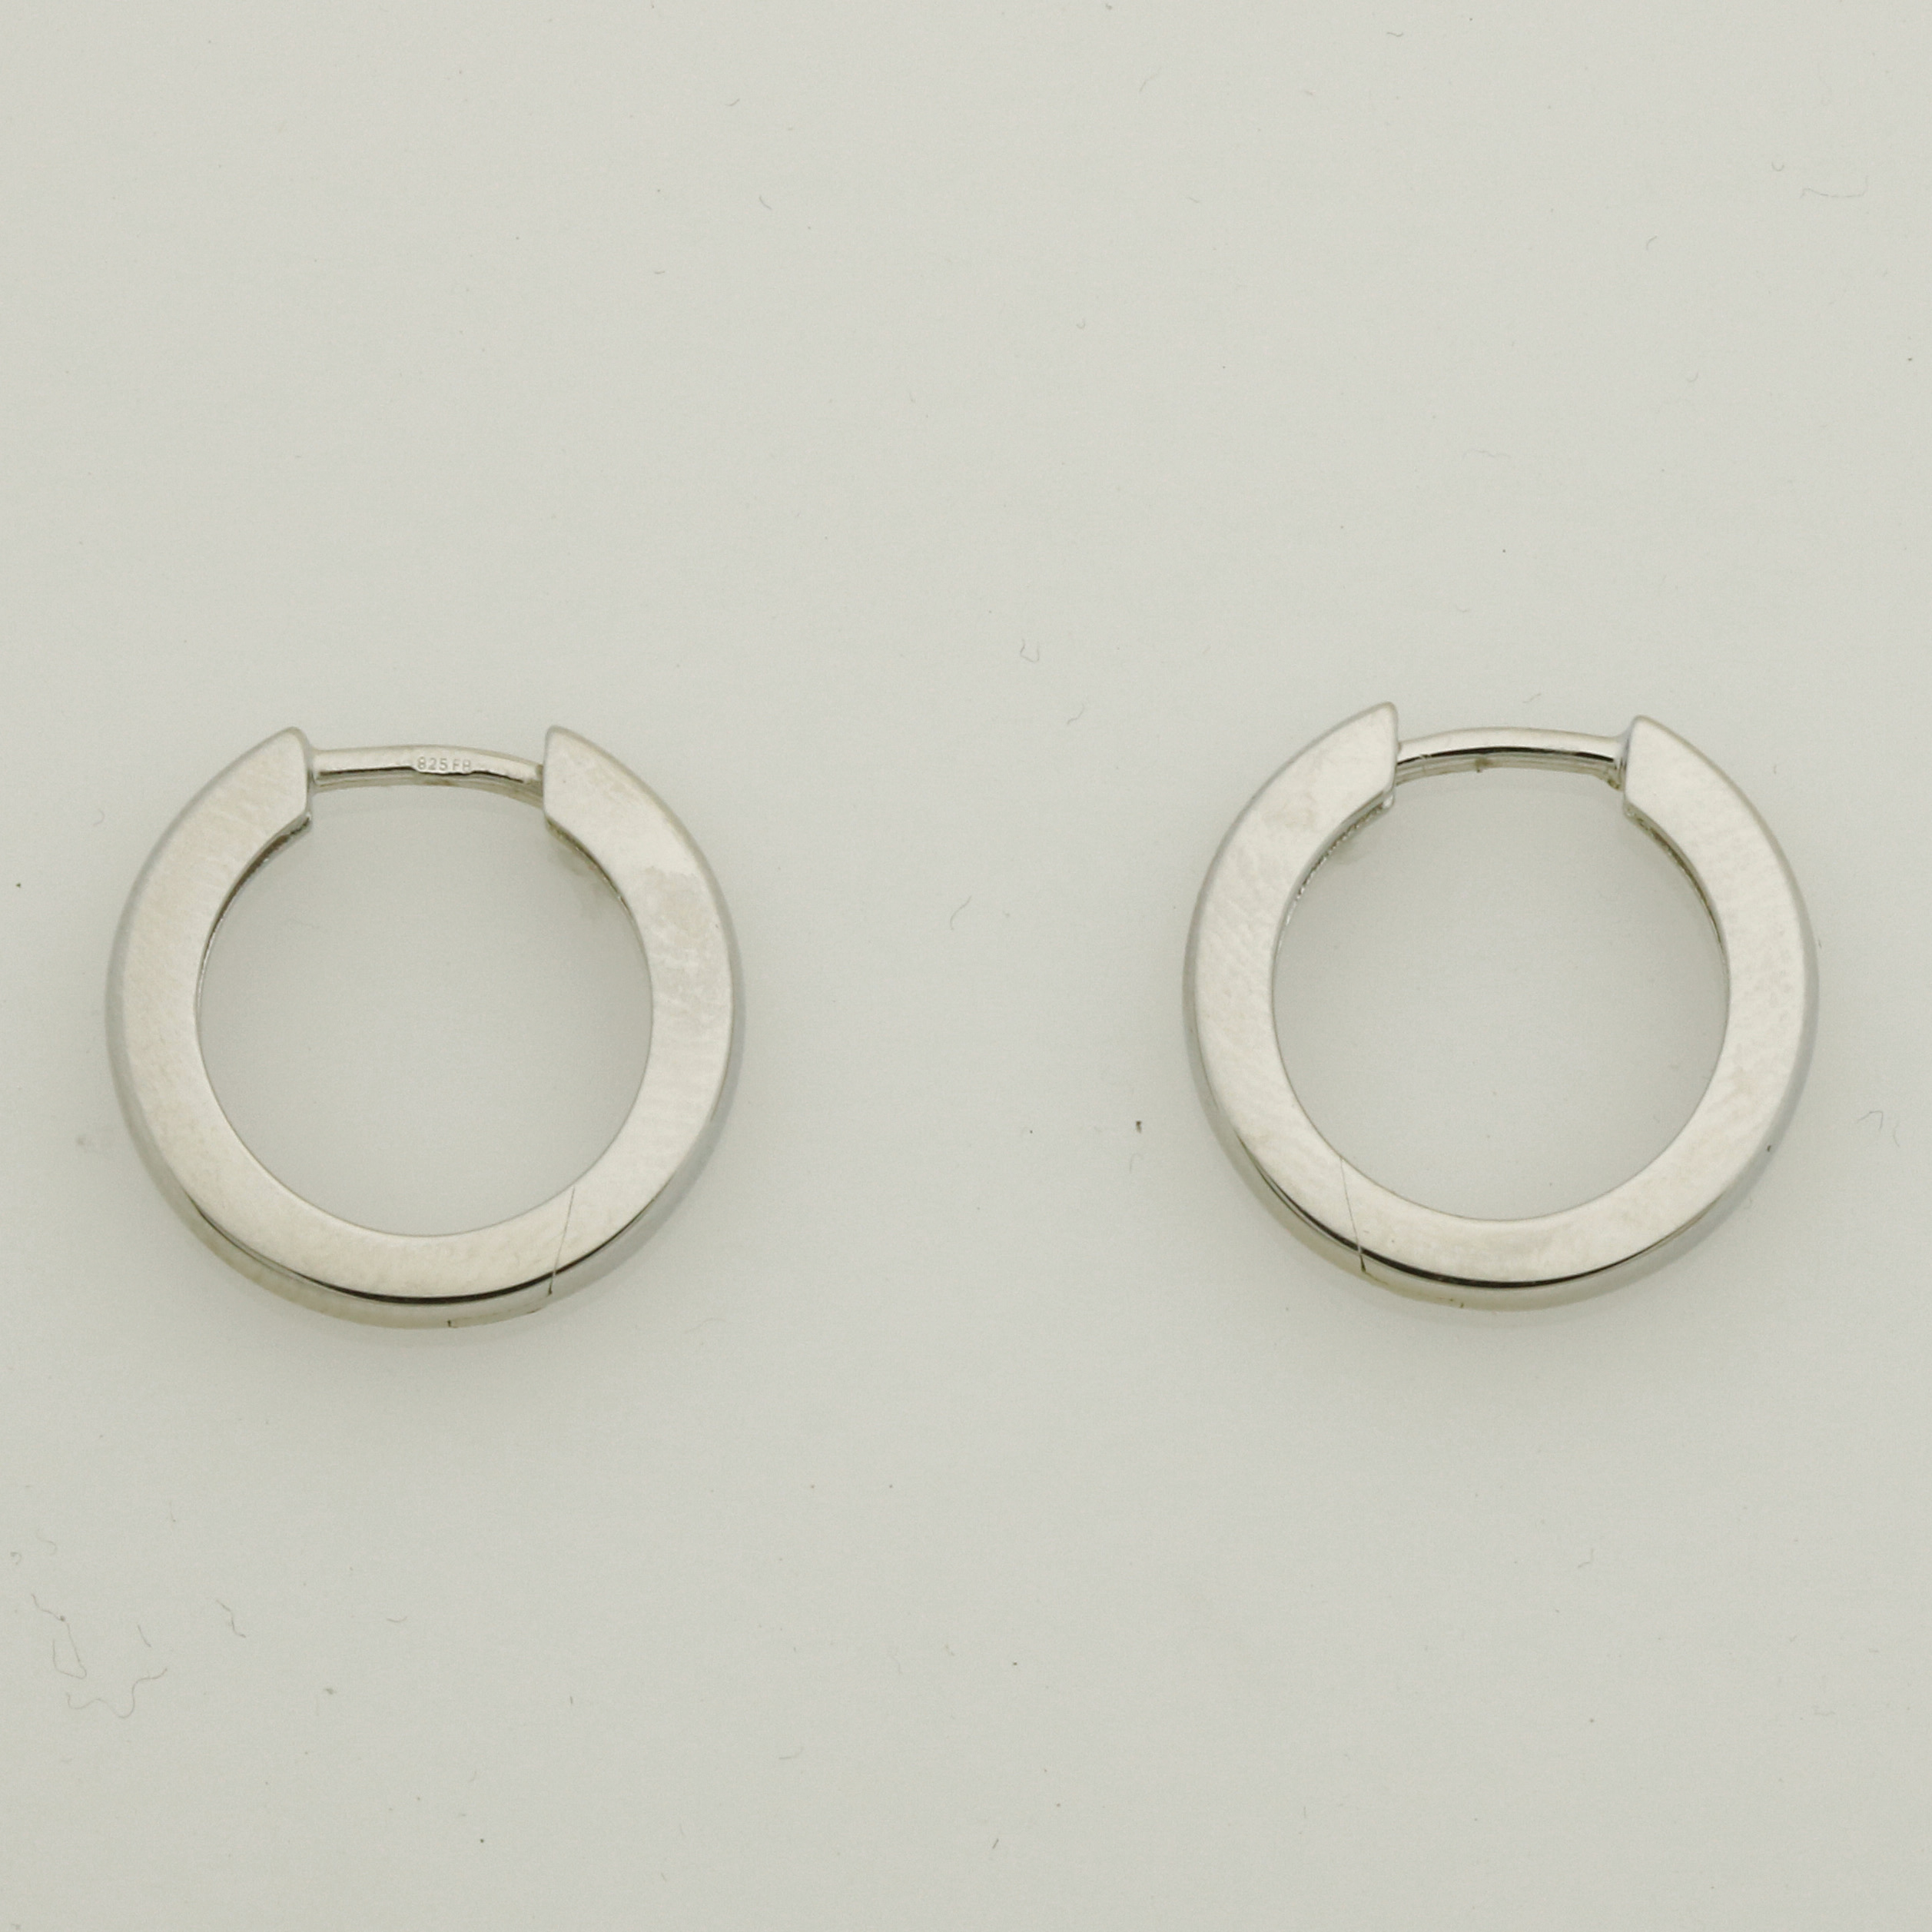 E0228 Sterling silver/rhodium plated huggies earring $160